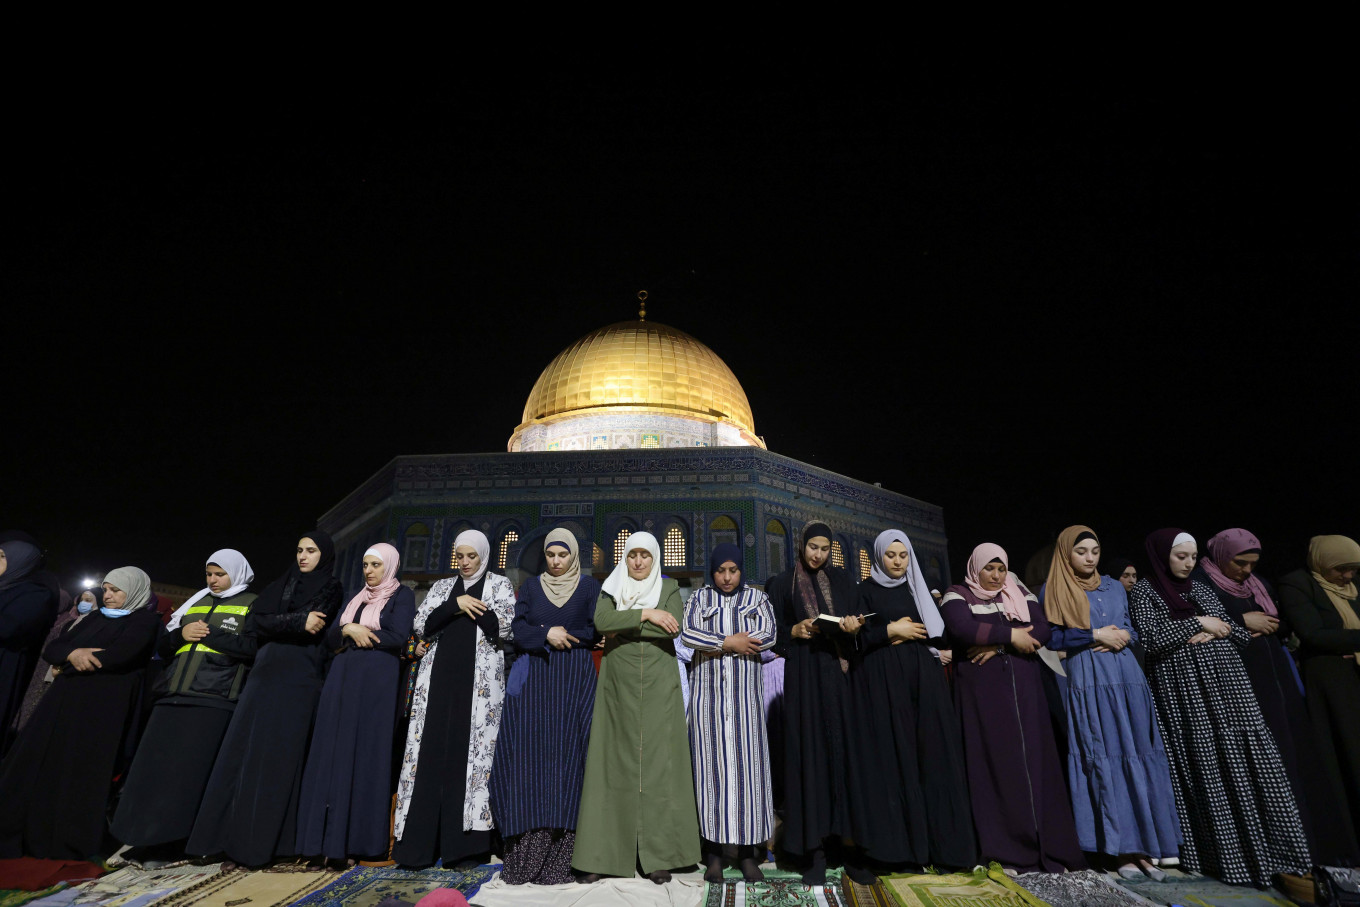 Indonesia condemns Israel's use of force against Palestinians